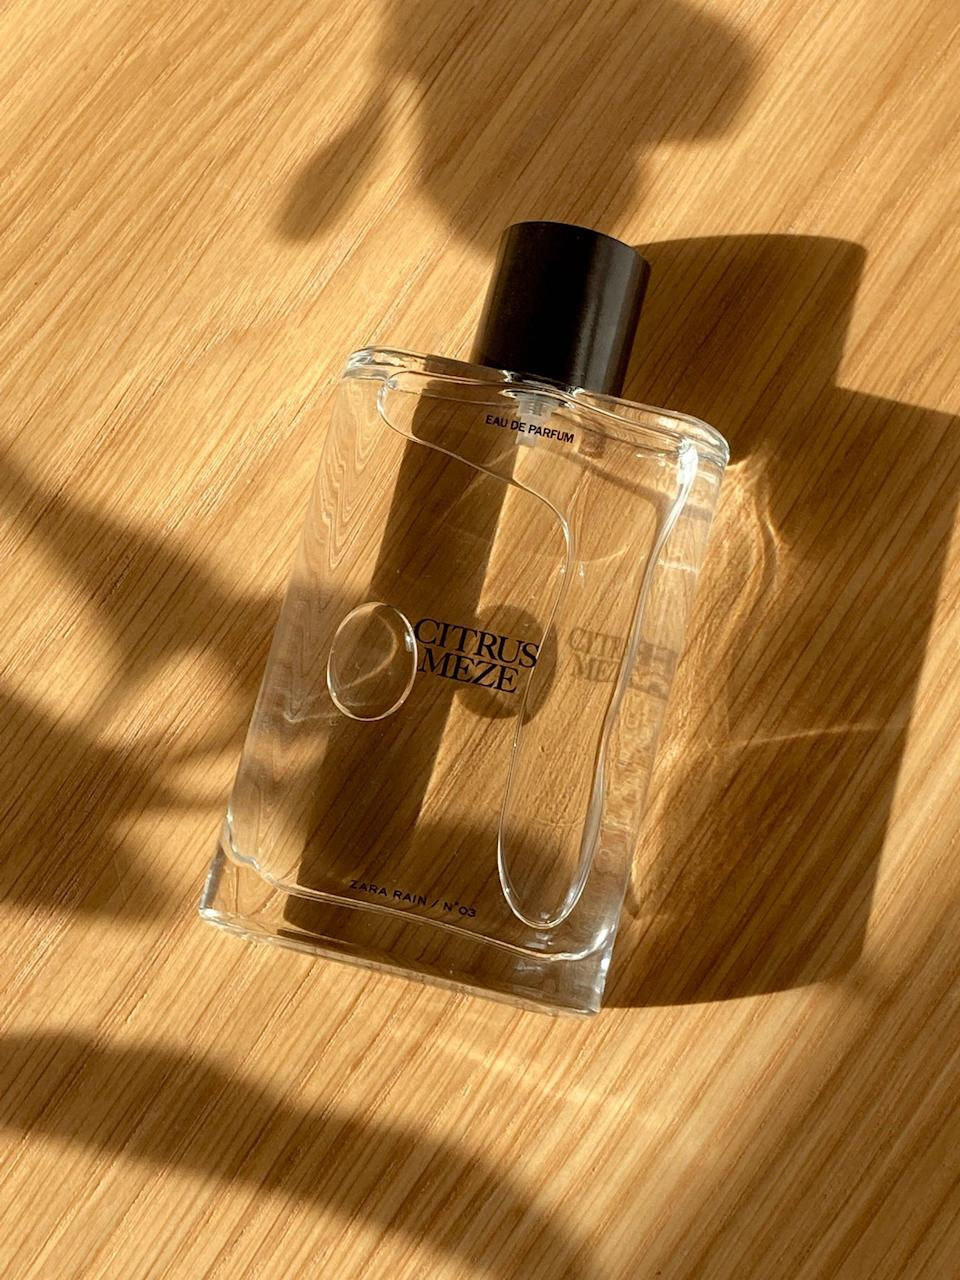 """<strong><h2>No.03 Citrus Meze EDP, £25.99 for 90ml</h2></strong><br>""""I'm picky when it comes to perfume, which is why I always go for something citrusy; you just can't go wrong. Straight out of the bottle, this perfume genuinely smells like freshly squeezed grapefruit and lime. What follows is a slightly sweet, almost floral undertone (which I wasn't expecting) that balances the scent nicely. Something about it feels very nostalgic to me. Overall, it's light yet vibrant, making it perfect for summer! The packaging is simple but feels very sleek for the price point and this perfume will definitely last you a while. If you're in the market for a classic citrusy scent, this one's a winner."""" <strong>– Kristine Romano, assistant, photo & design.<br></strong><br><br><strong>Zara Rain</strong> No.03 Citrus Meze EDP, $, available at <a href=""""https://www.zara.com/uk/en/n%C2%B003-citrus-meze-edp-90-ml---3-04%C2%A0oz-p20110273.html?v1=108989265"""" rel=""""nofollow noopener"""" target=""""_blank"""" data-ylk=""""slk:Zara"""" class=""""link rapid-noclick-resp"""">Zara</a>"""